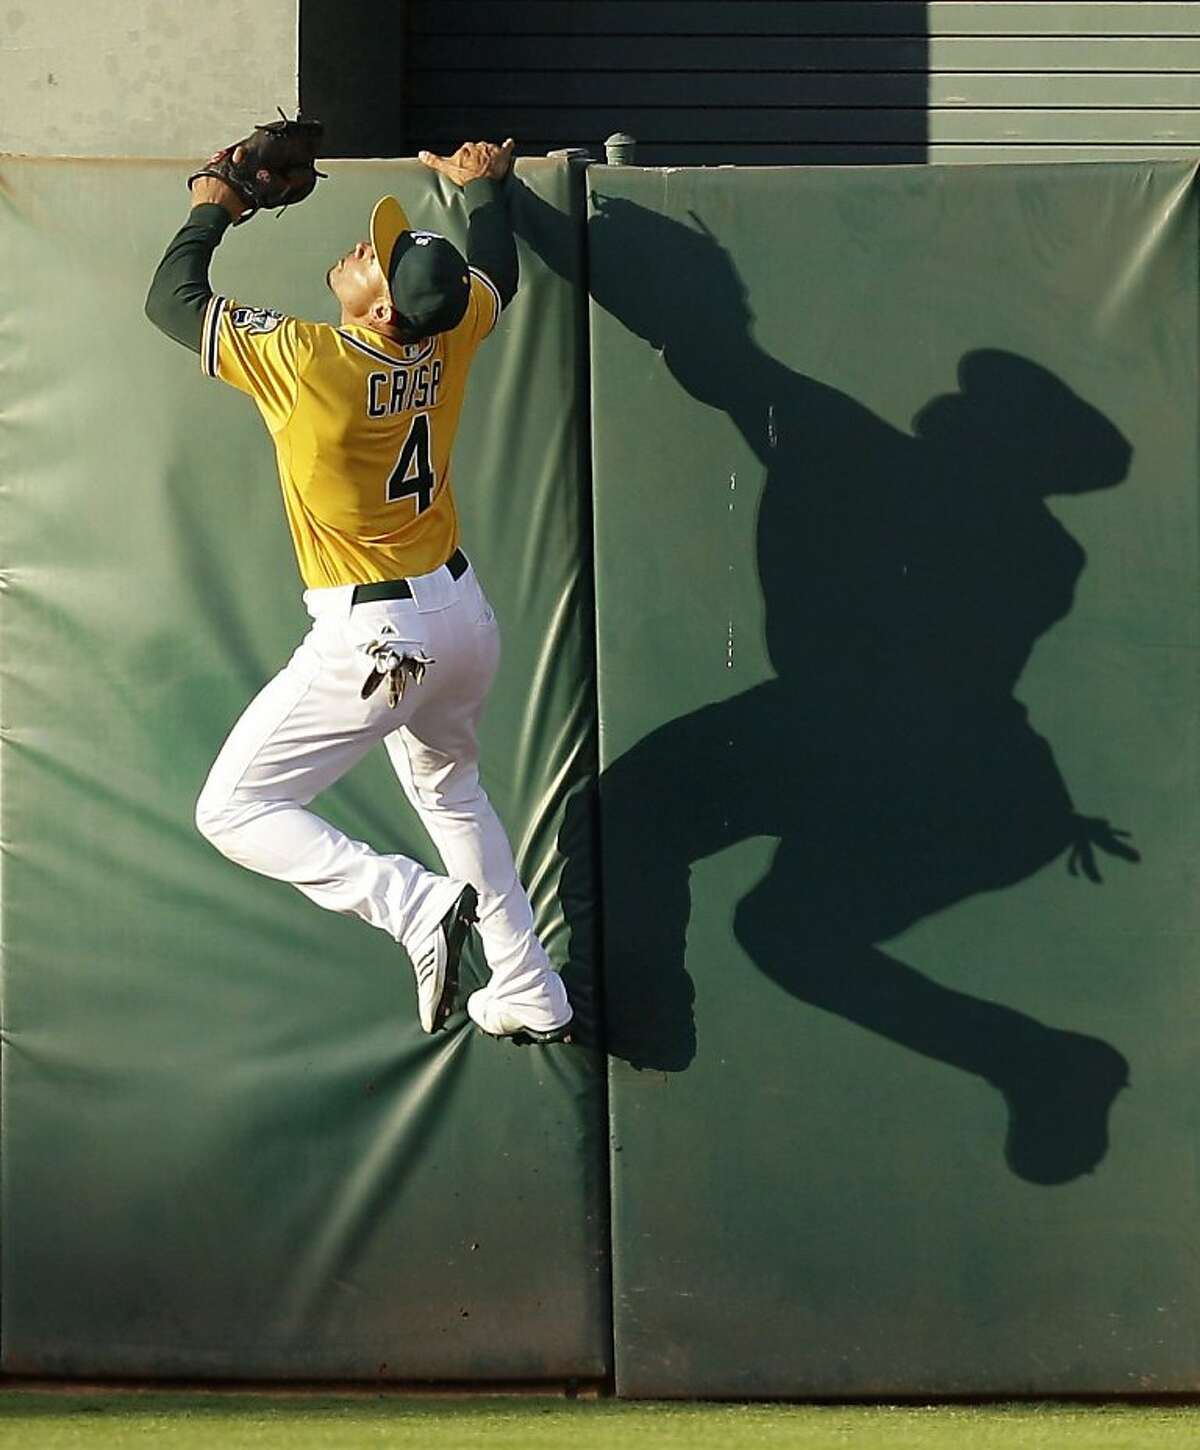 Oakland Athletics center fielder Coco Crisp climbs the wall, but is unable to catch a twor-un home run by Florida Marlins' Hanley Ramirez during the first inning of a baseball game Wednesday, June 29, 2011, in Oakland, Calif.